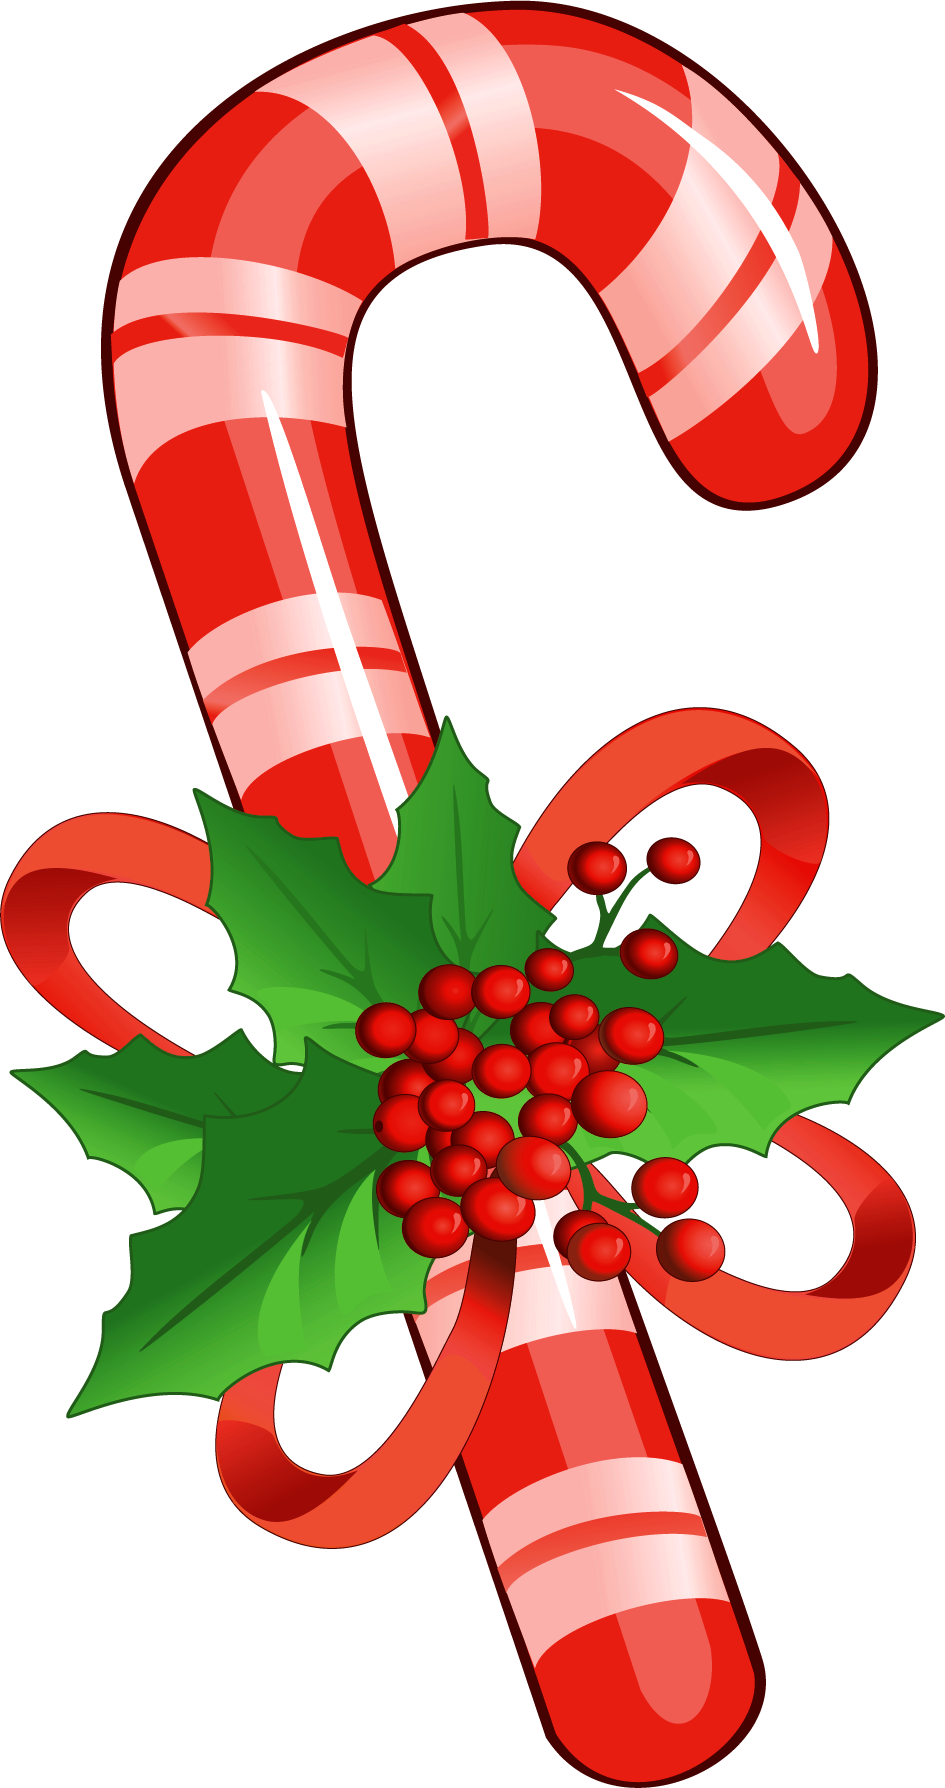 image stock Candy cane png google. Canes clipart